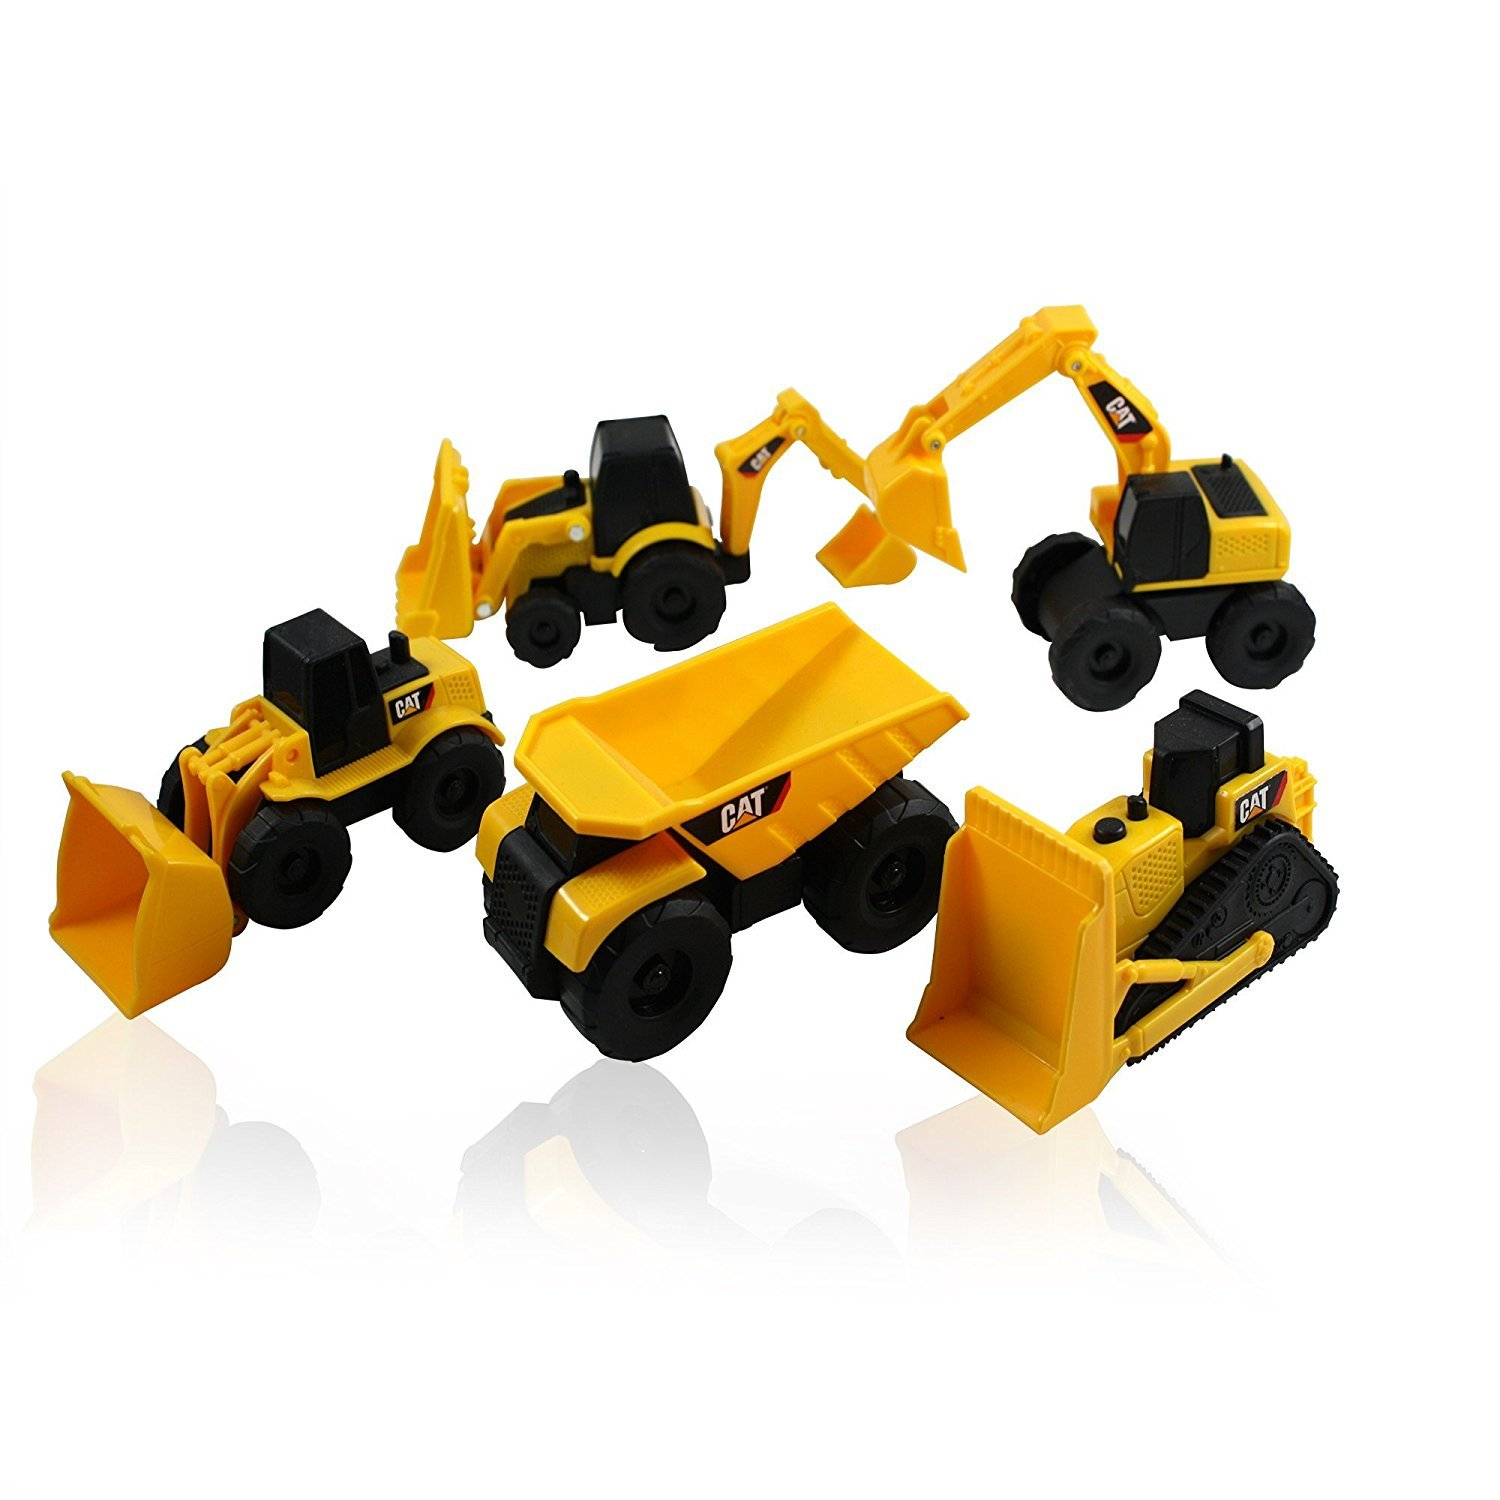 Top 10 Best Construction Toys